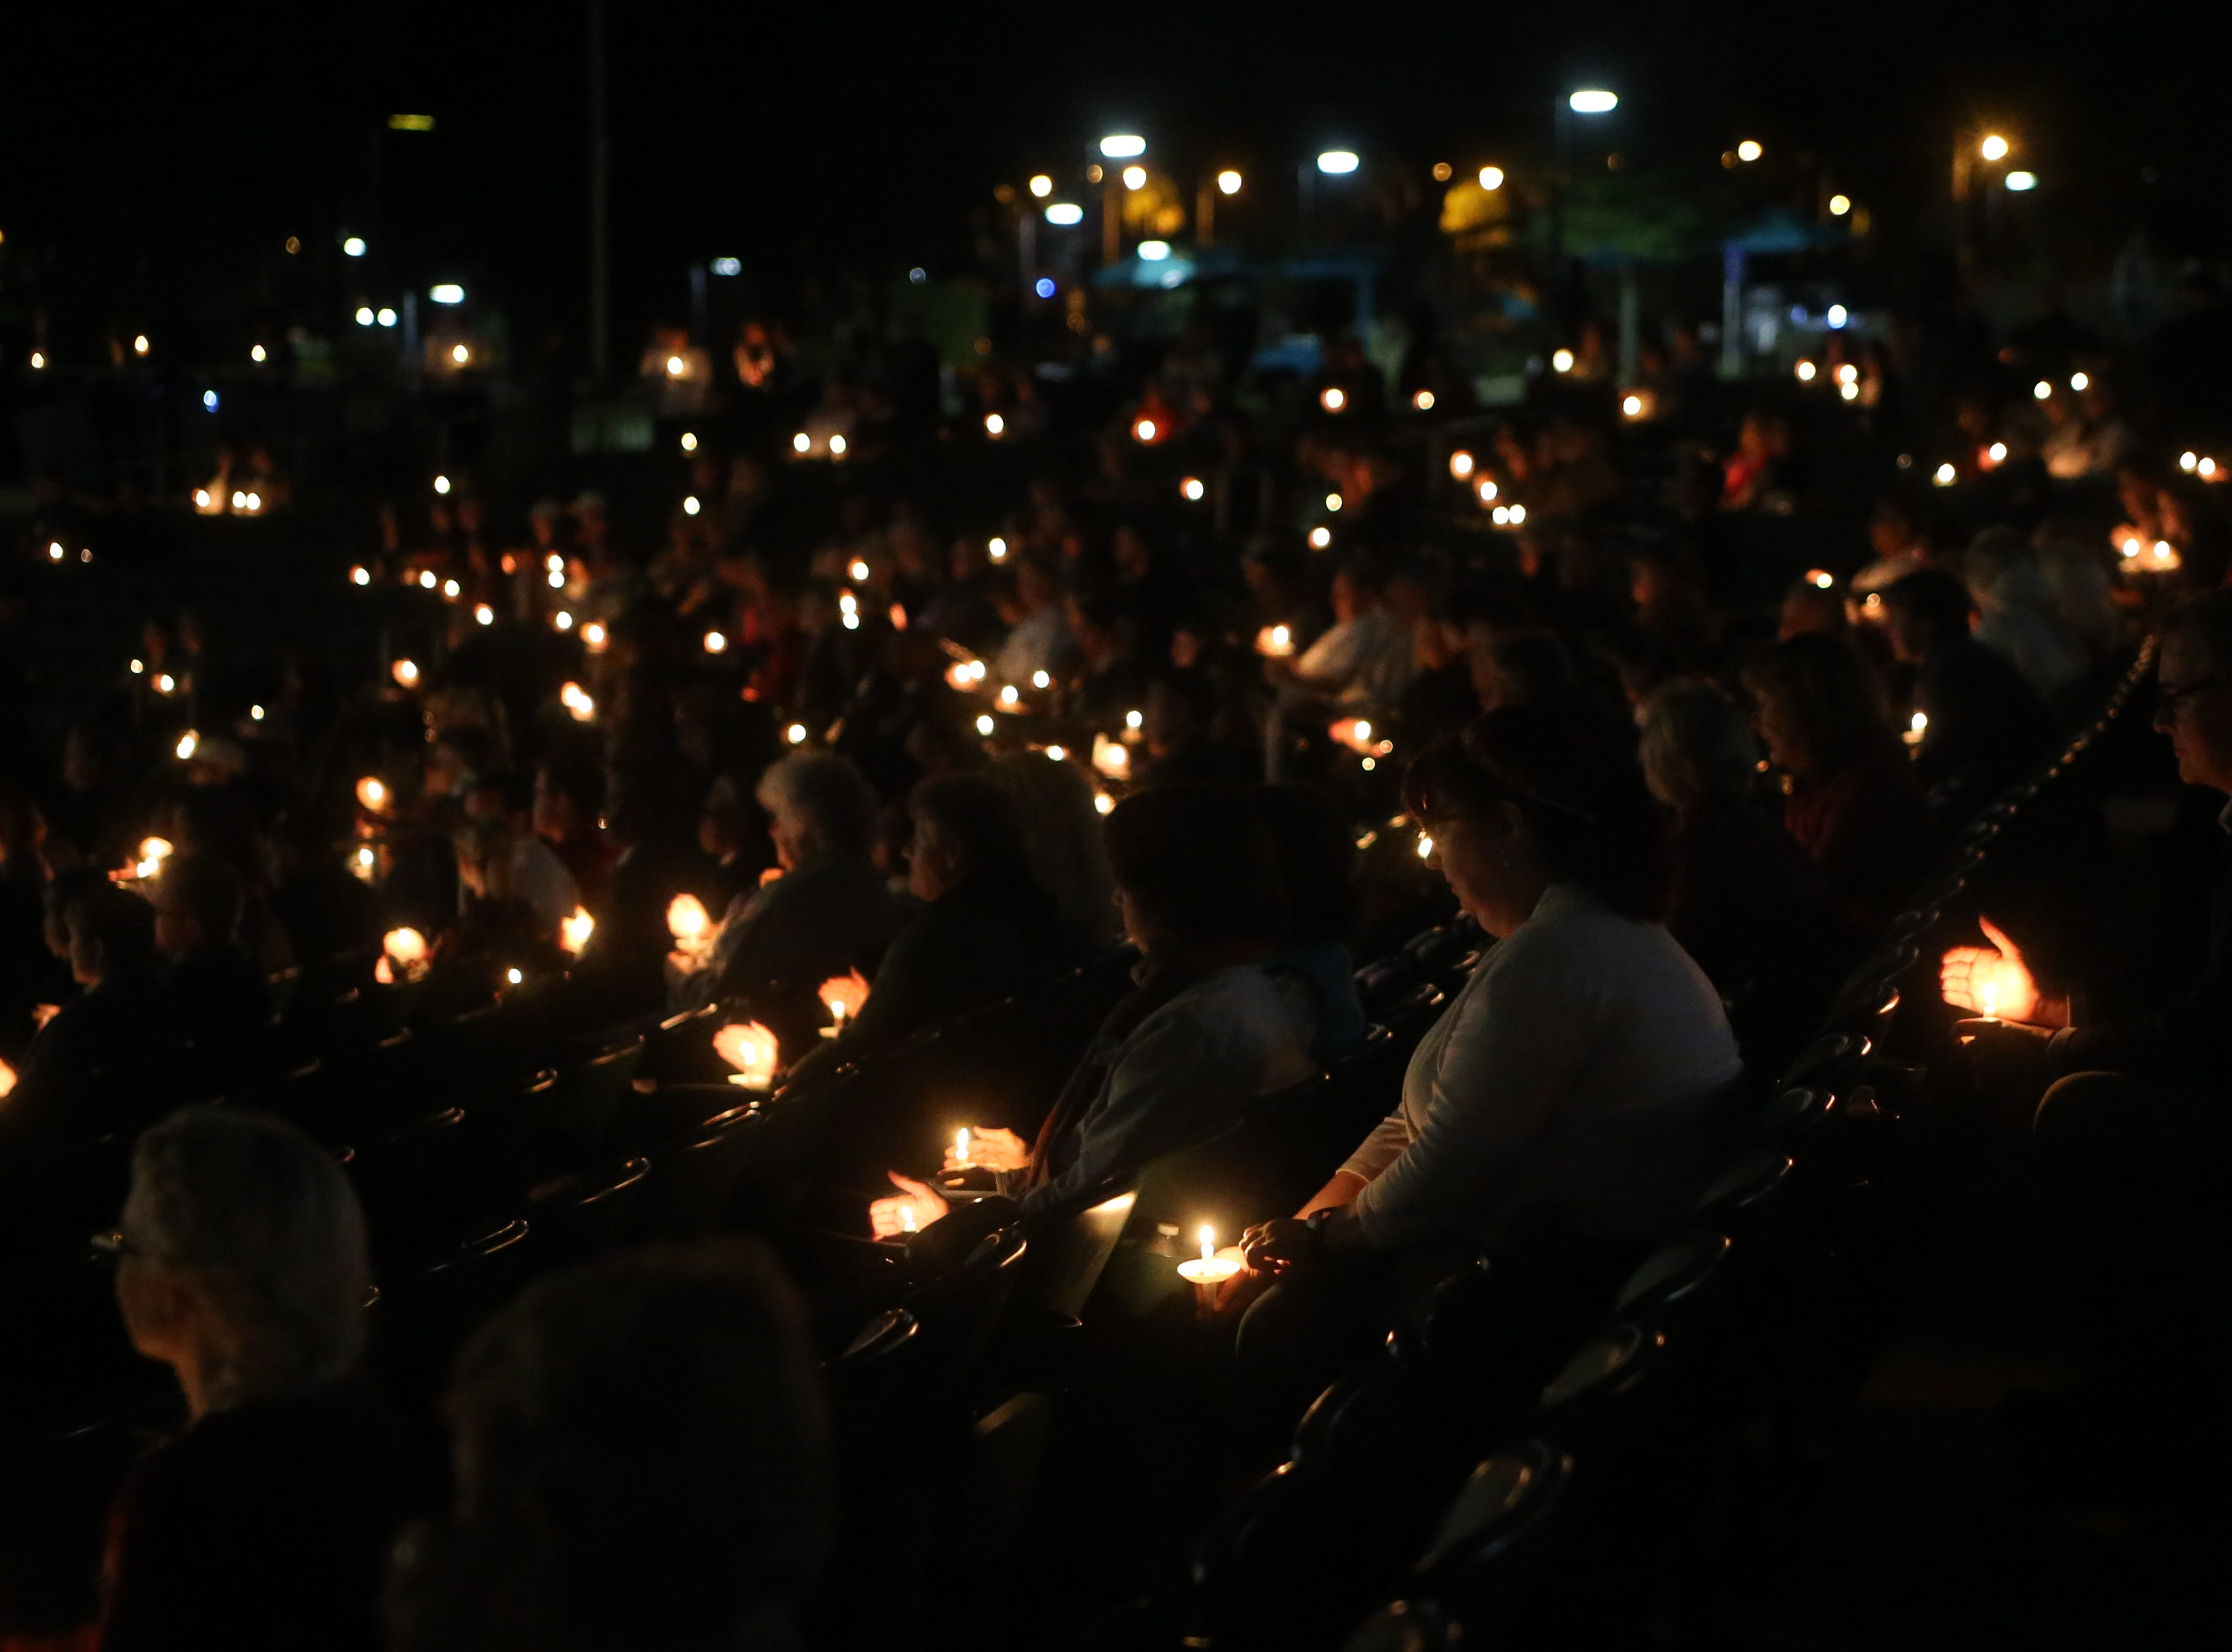 Hundreds gather for a vigil at the Hope, Healing, Harmony community event in honor of  Maura Binkley and Nancy Van Vessem, the two women who were killed during the shooting at Hot Yoga Tallahassee. The vigil was held at Cascades Park, Sunday, Nov. 11, 2018.